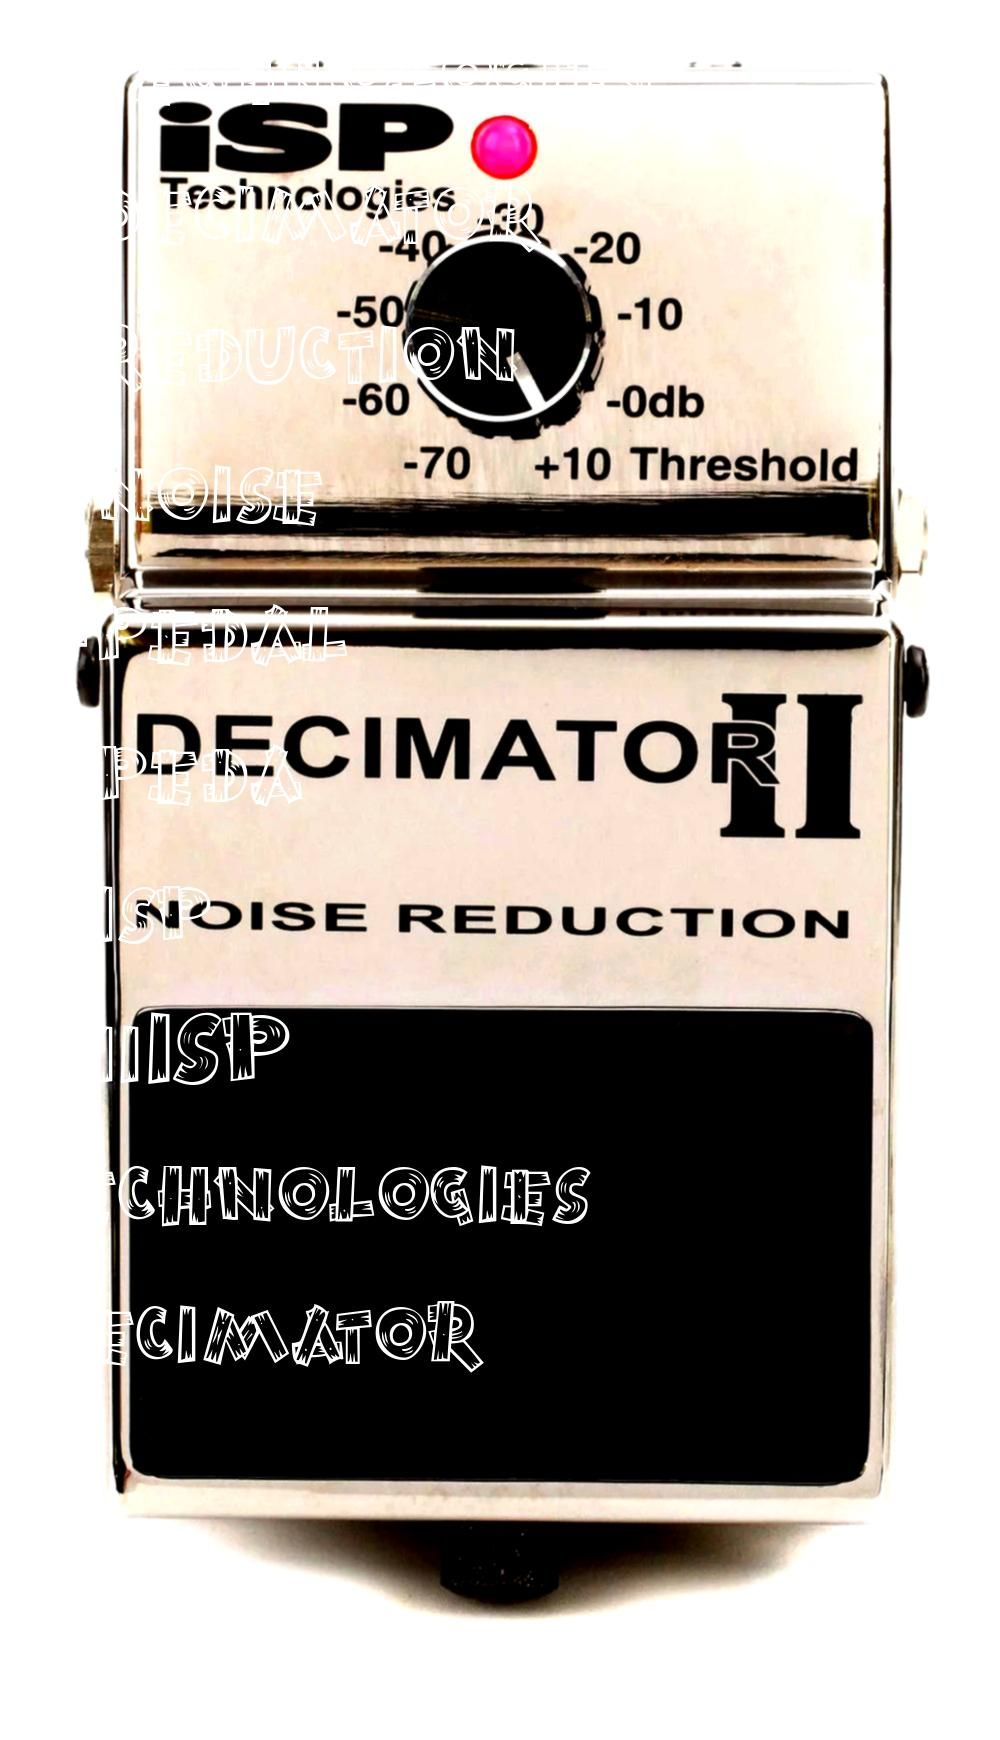 #technologies #decimator #reduction #noise #pedal #peda #isp #iiISP Technologies Decimator II Noise Reduction PedalISP Technologies Decimator II Noise Reduction Pedal  Archetype: Abasi - Neural DSP Technologies  JHS Pedals The AT+  Andy Timmons Signature Drive Pedal  Jackson King V KVXT (Black W/ Blood Red Bevels) |   Gibson Custom Shop Limited Flying V Custom Satin Red Widow  Polyphonic Pitch Shifter with Expression Pedal Input, Blend Control, and Buffered Bypass  Reeds Vol 10: Instrumen...